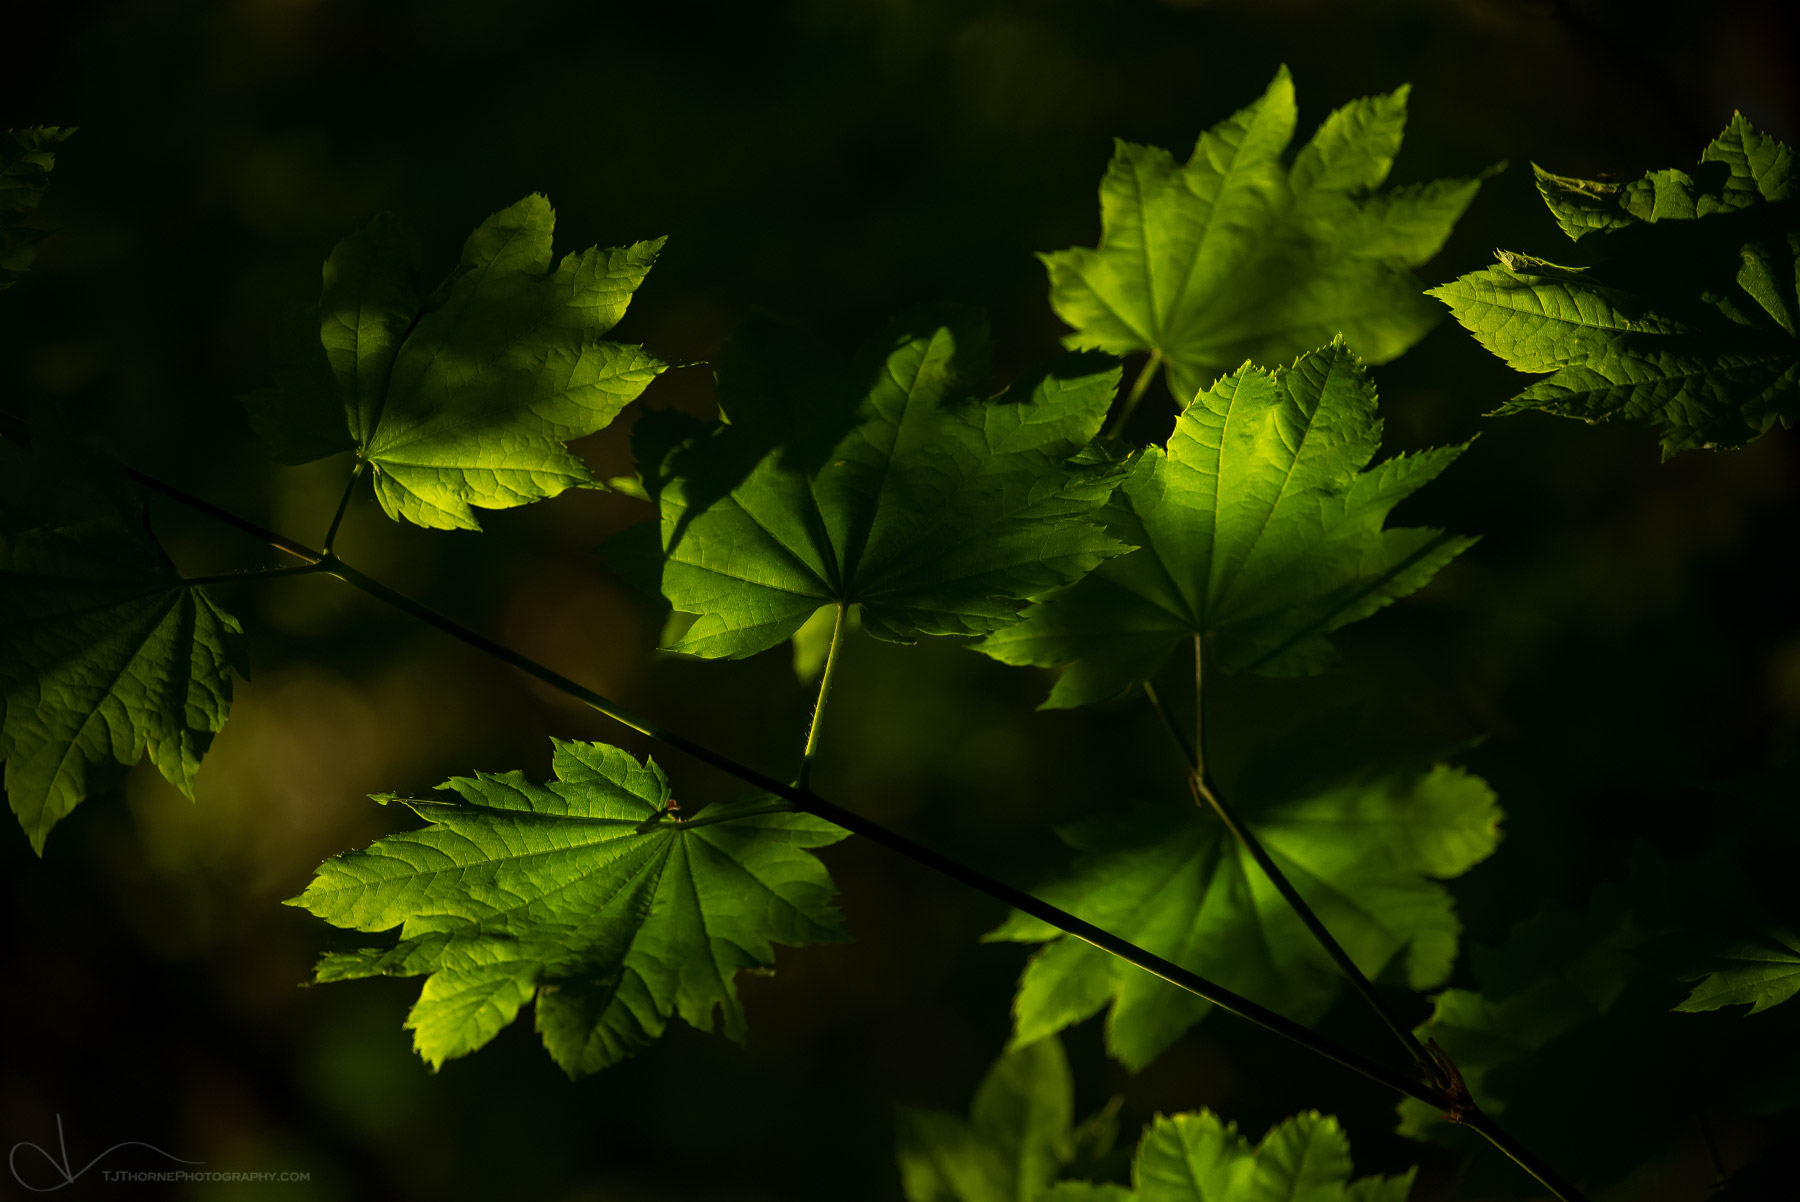 leaves, olympic national park, washington, photo